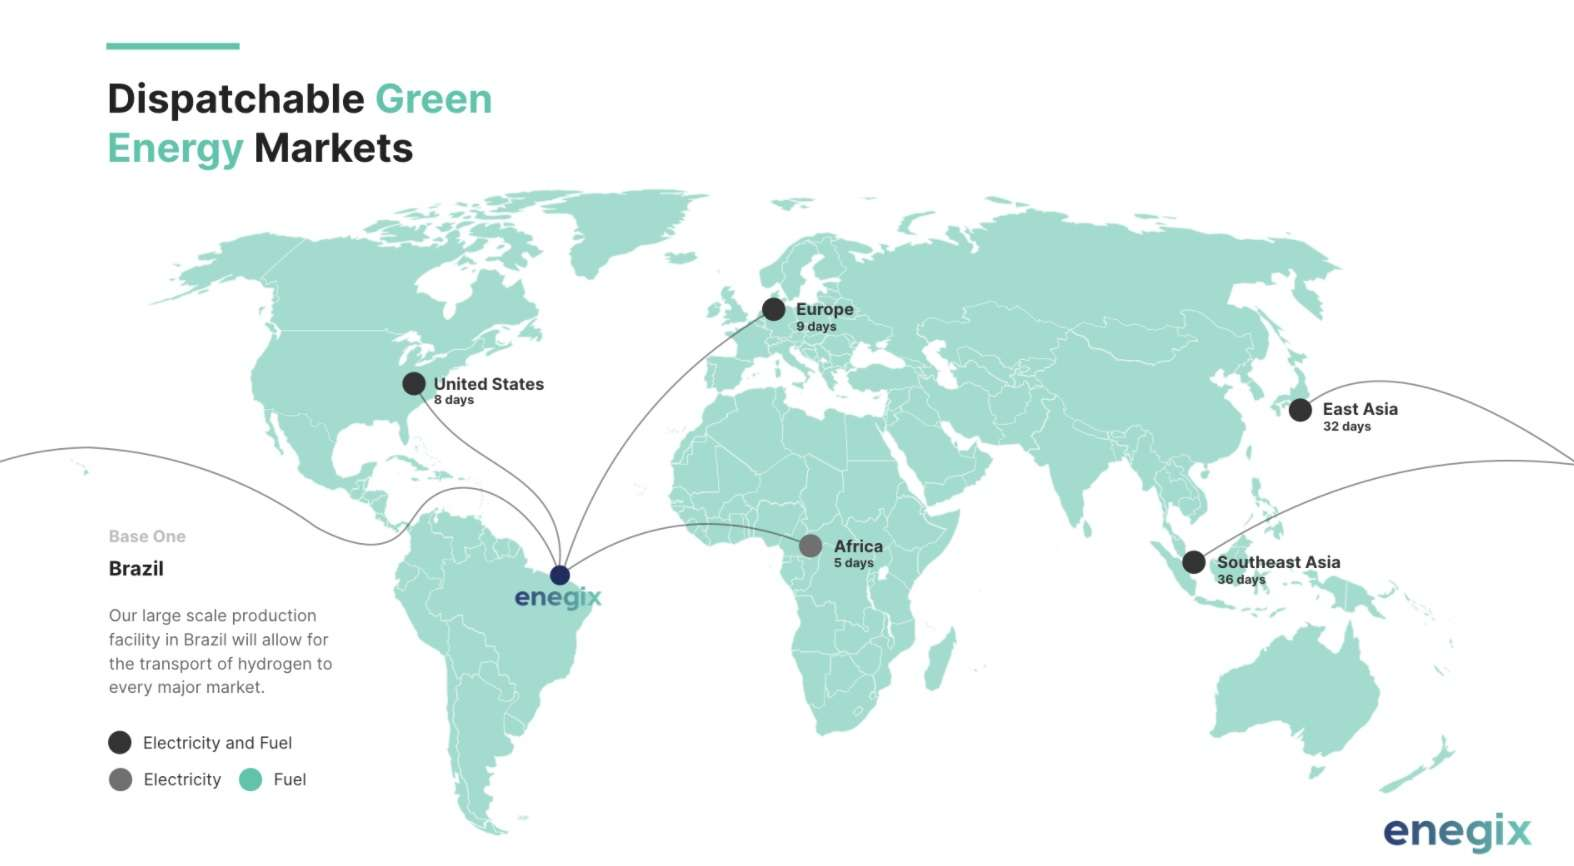 Hydrogen exports from Brazil